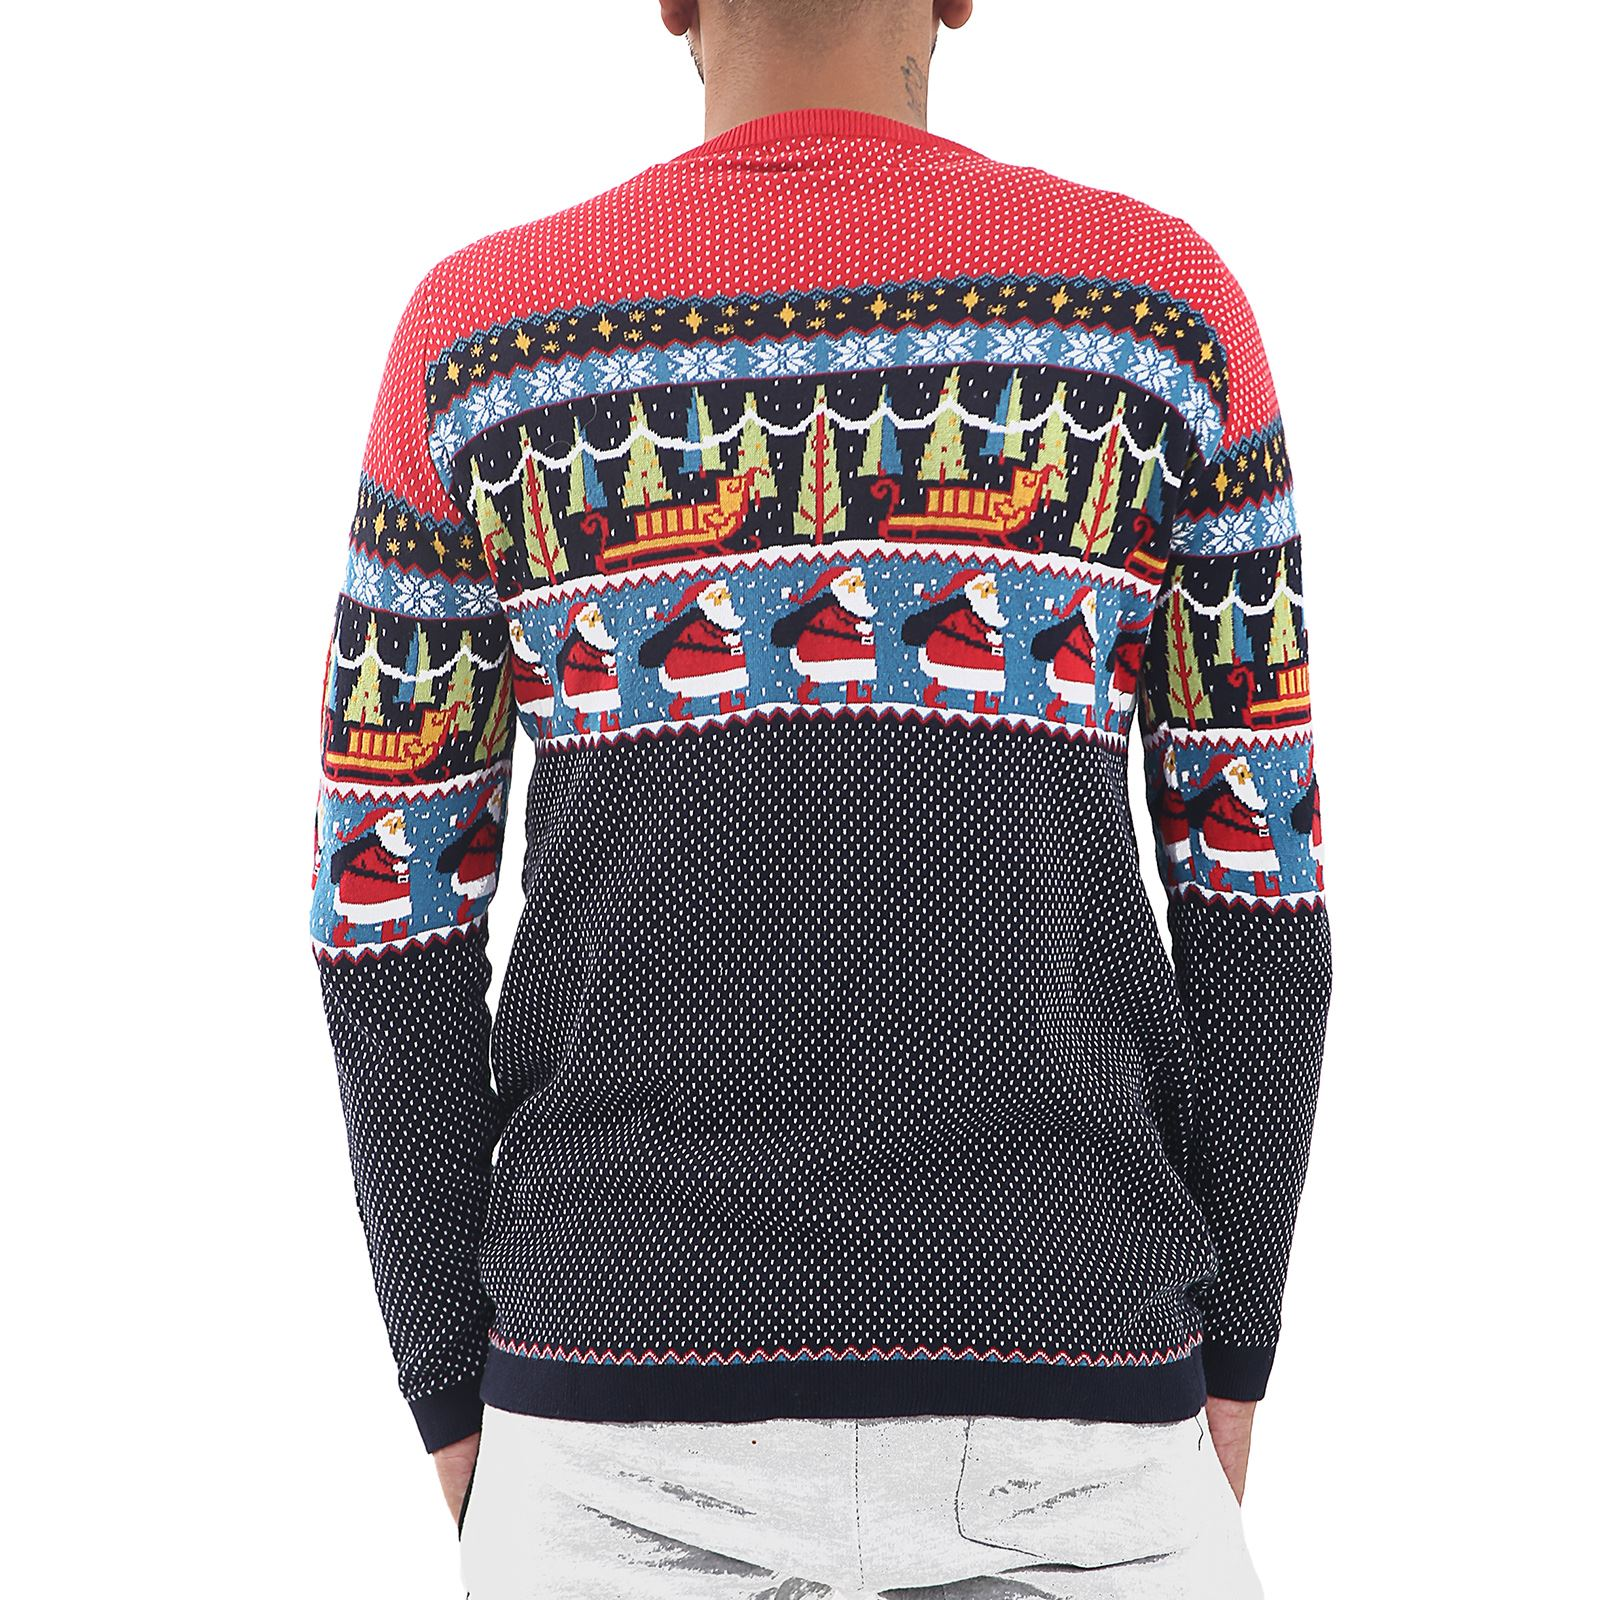 Mens-Ladies-Ex-Store-Matching-Christmas-Sweater-Jumper-Sweatshirt-Xmas-His-Hers thumbnail 4